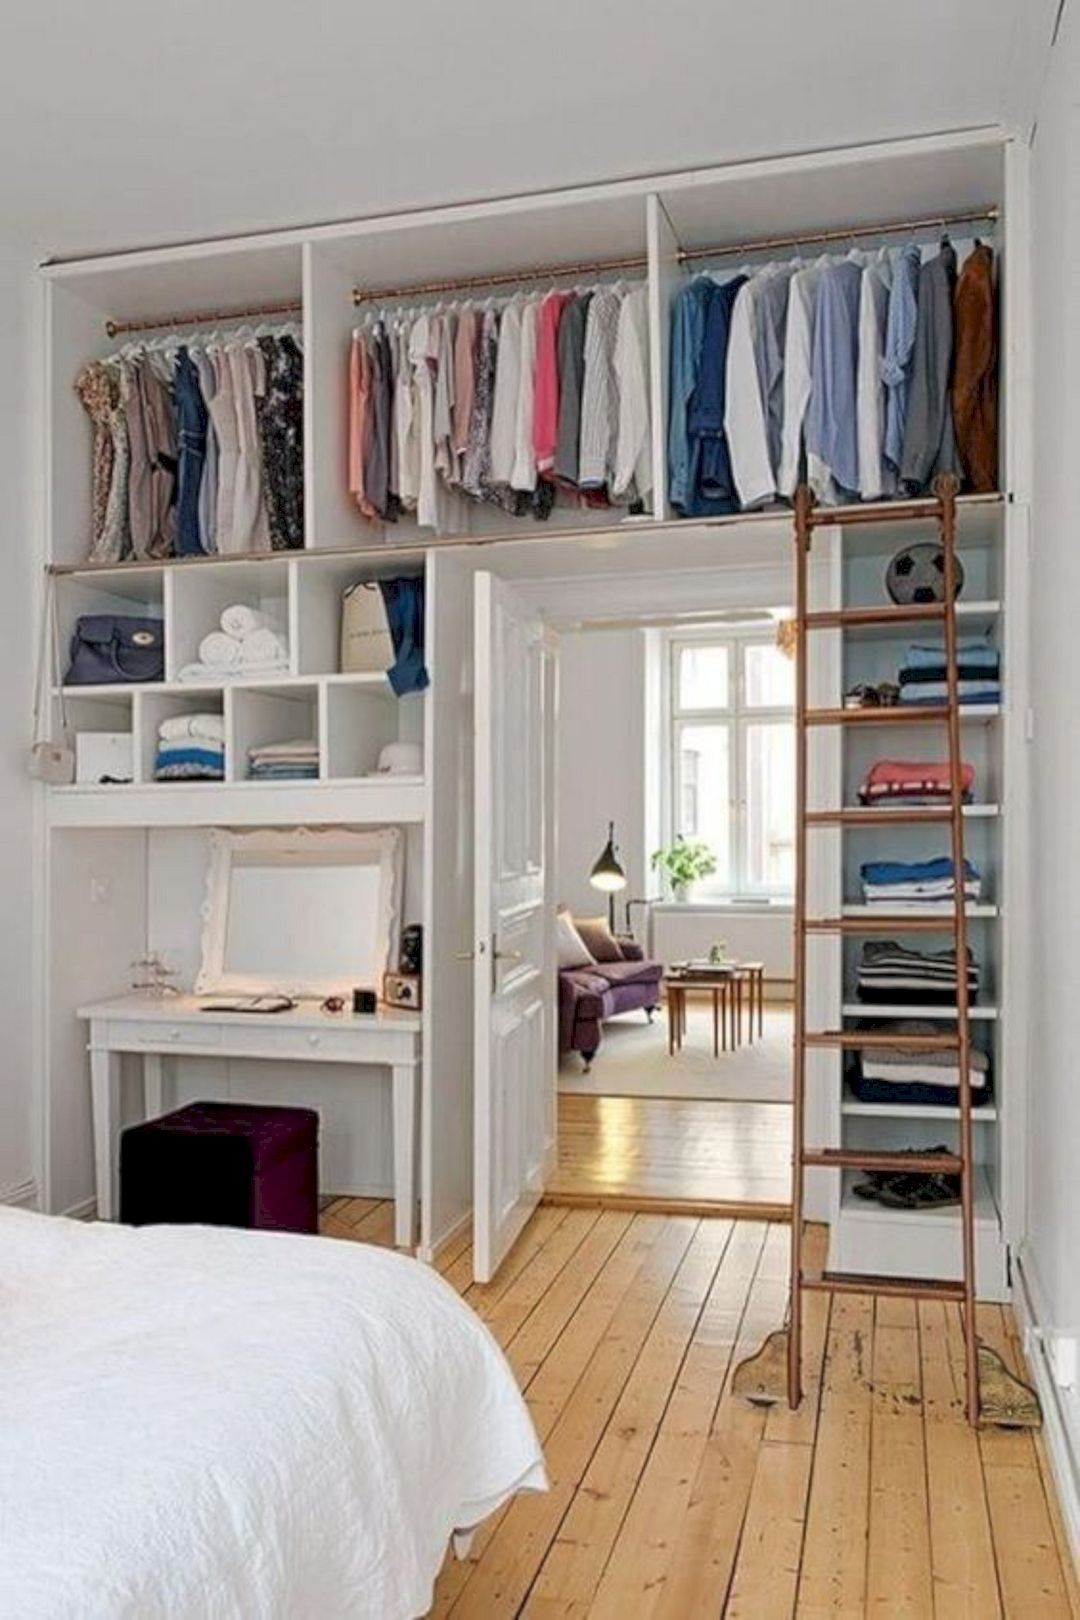 16 Nice Closet Storage Ideas Small Apartment Bedrooms Small Room Design Small Bedroom Designs